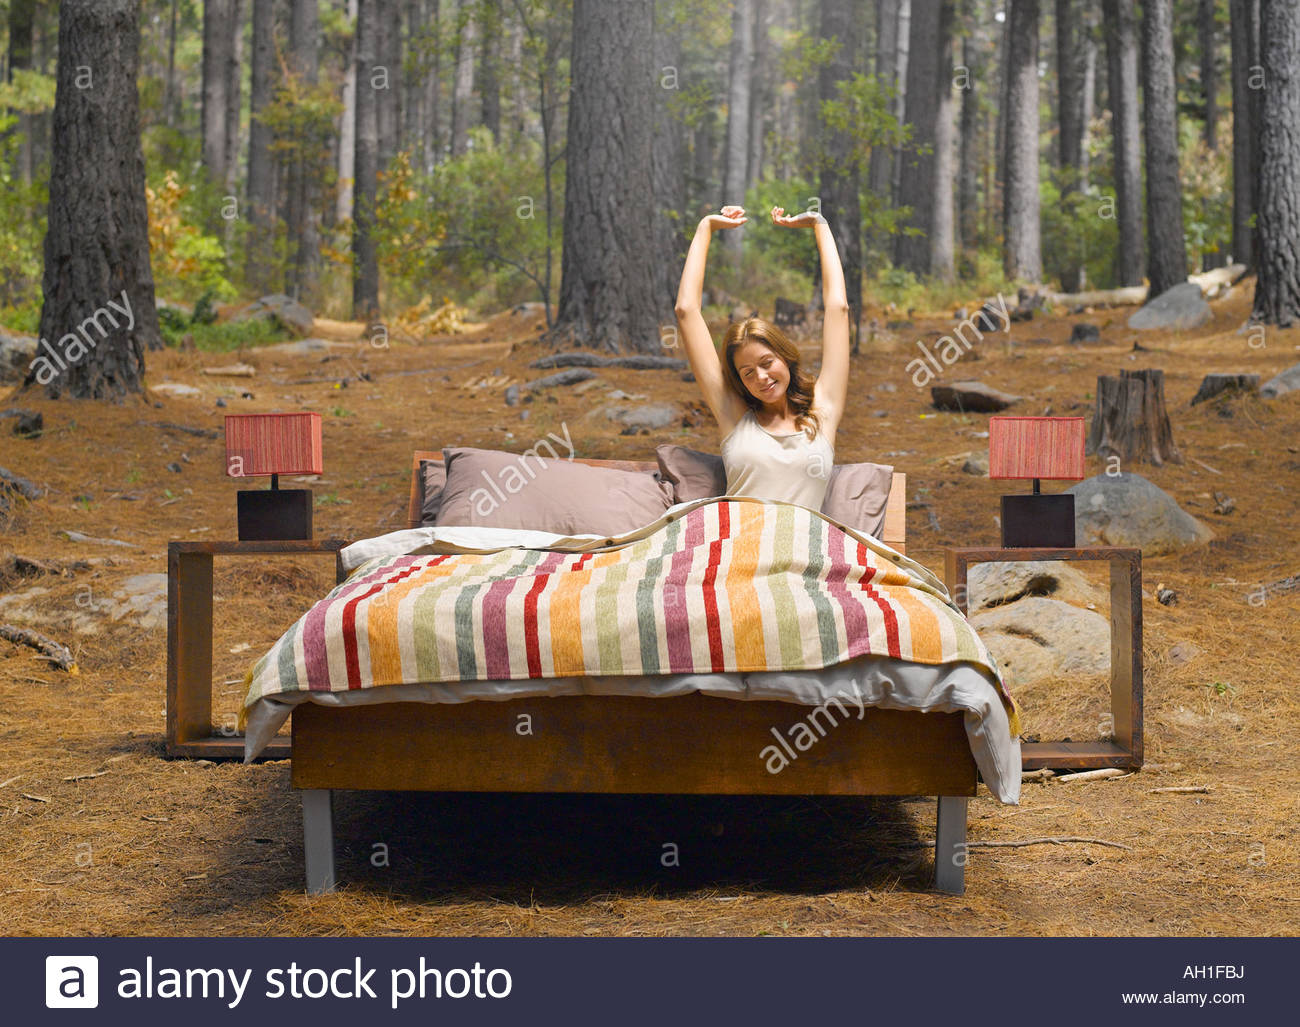 A woman stretching in a bed outdoors in the woods - Stock Image